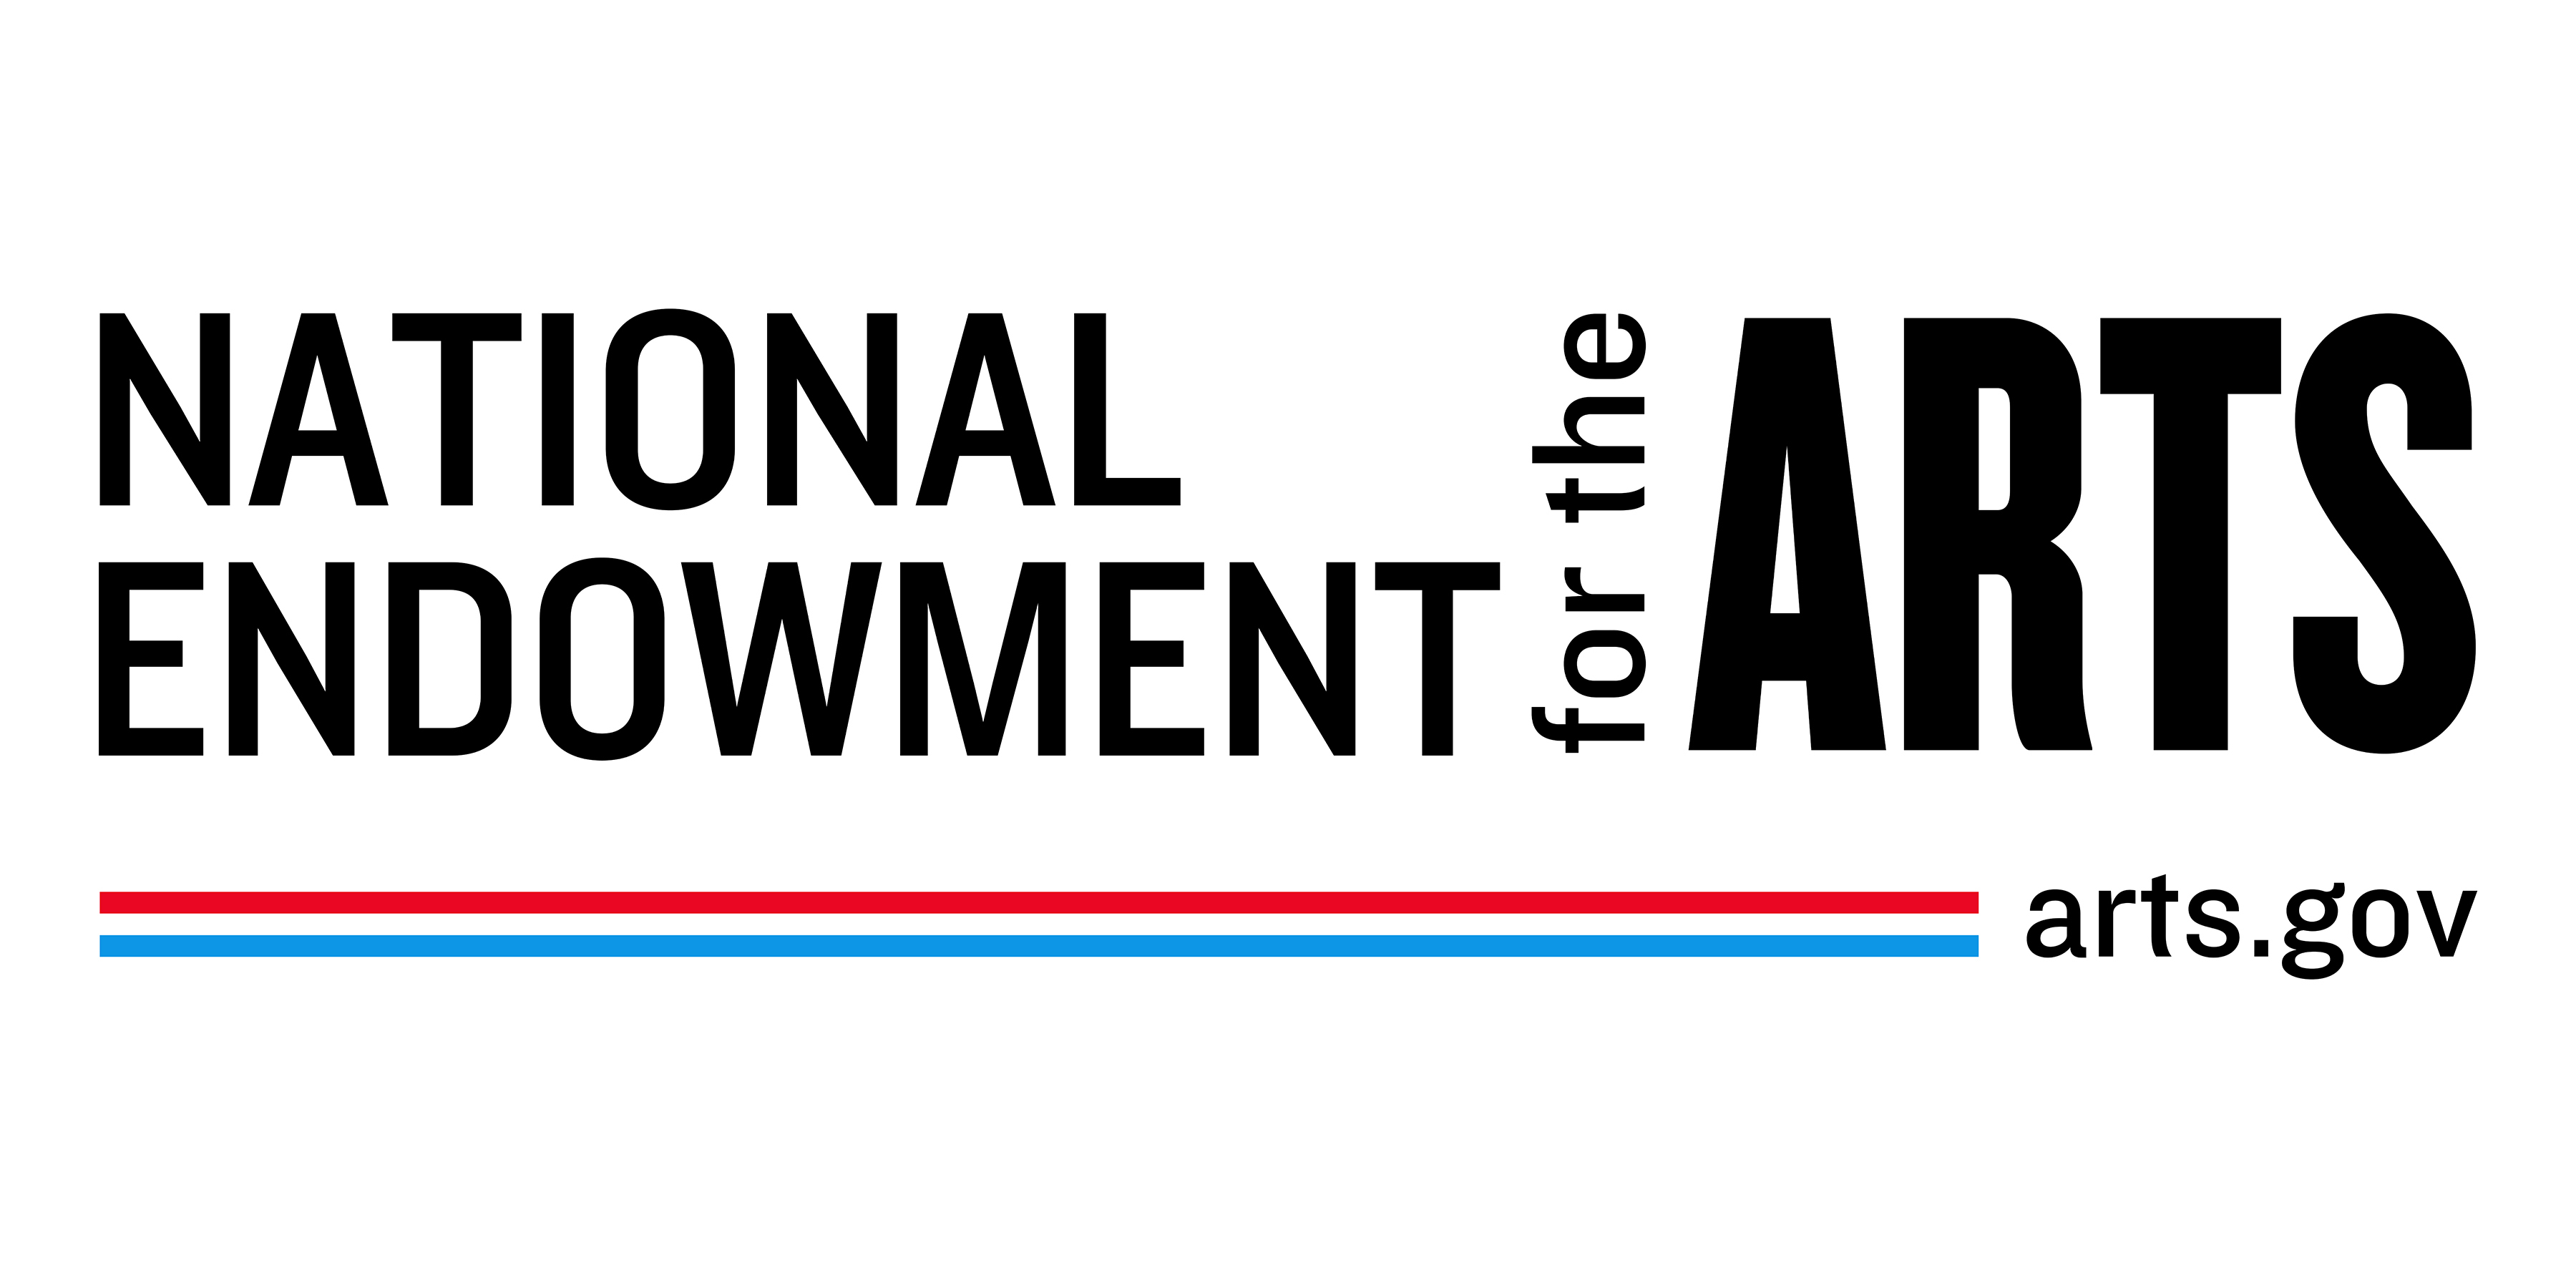 Natioanal Endowment for the Arts Logo